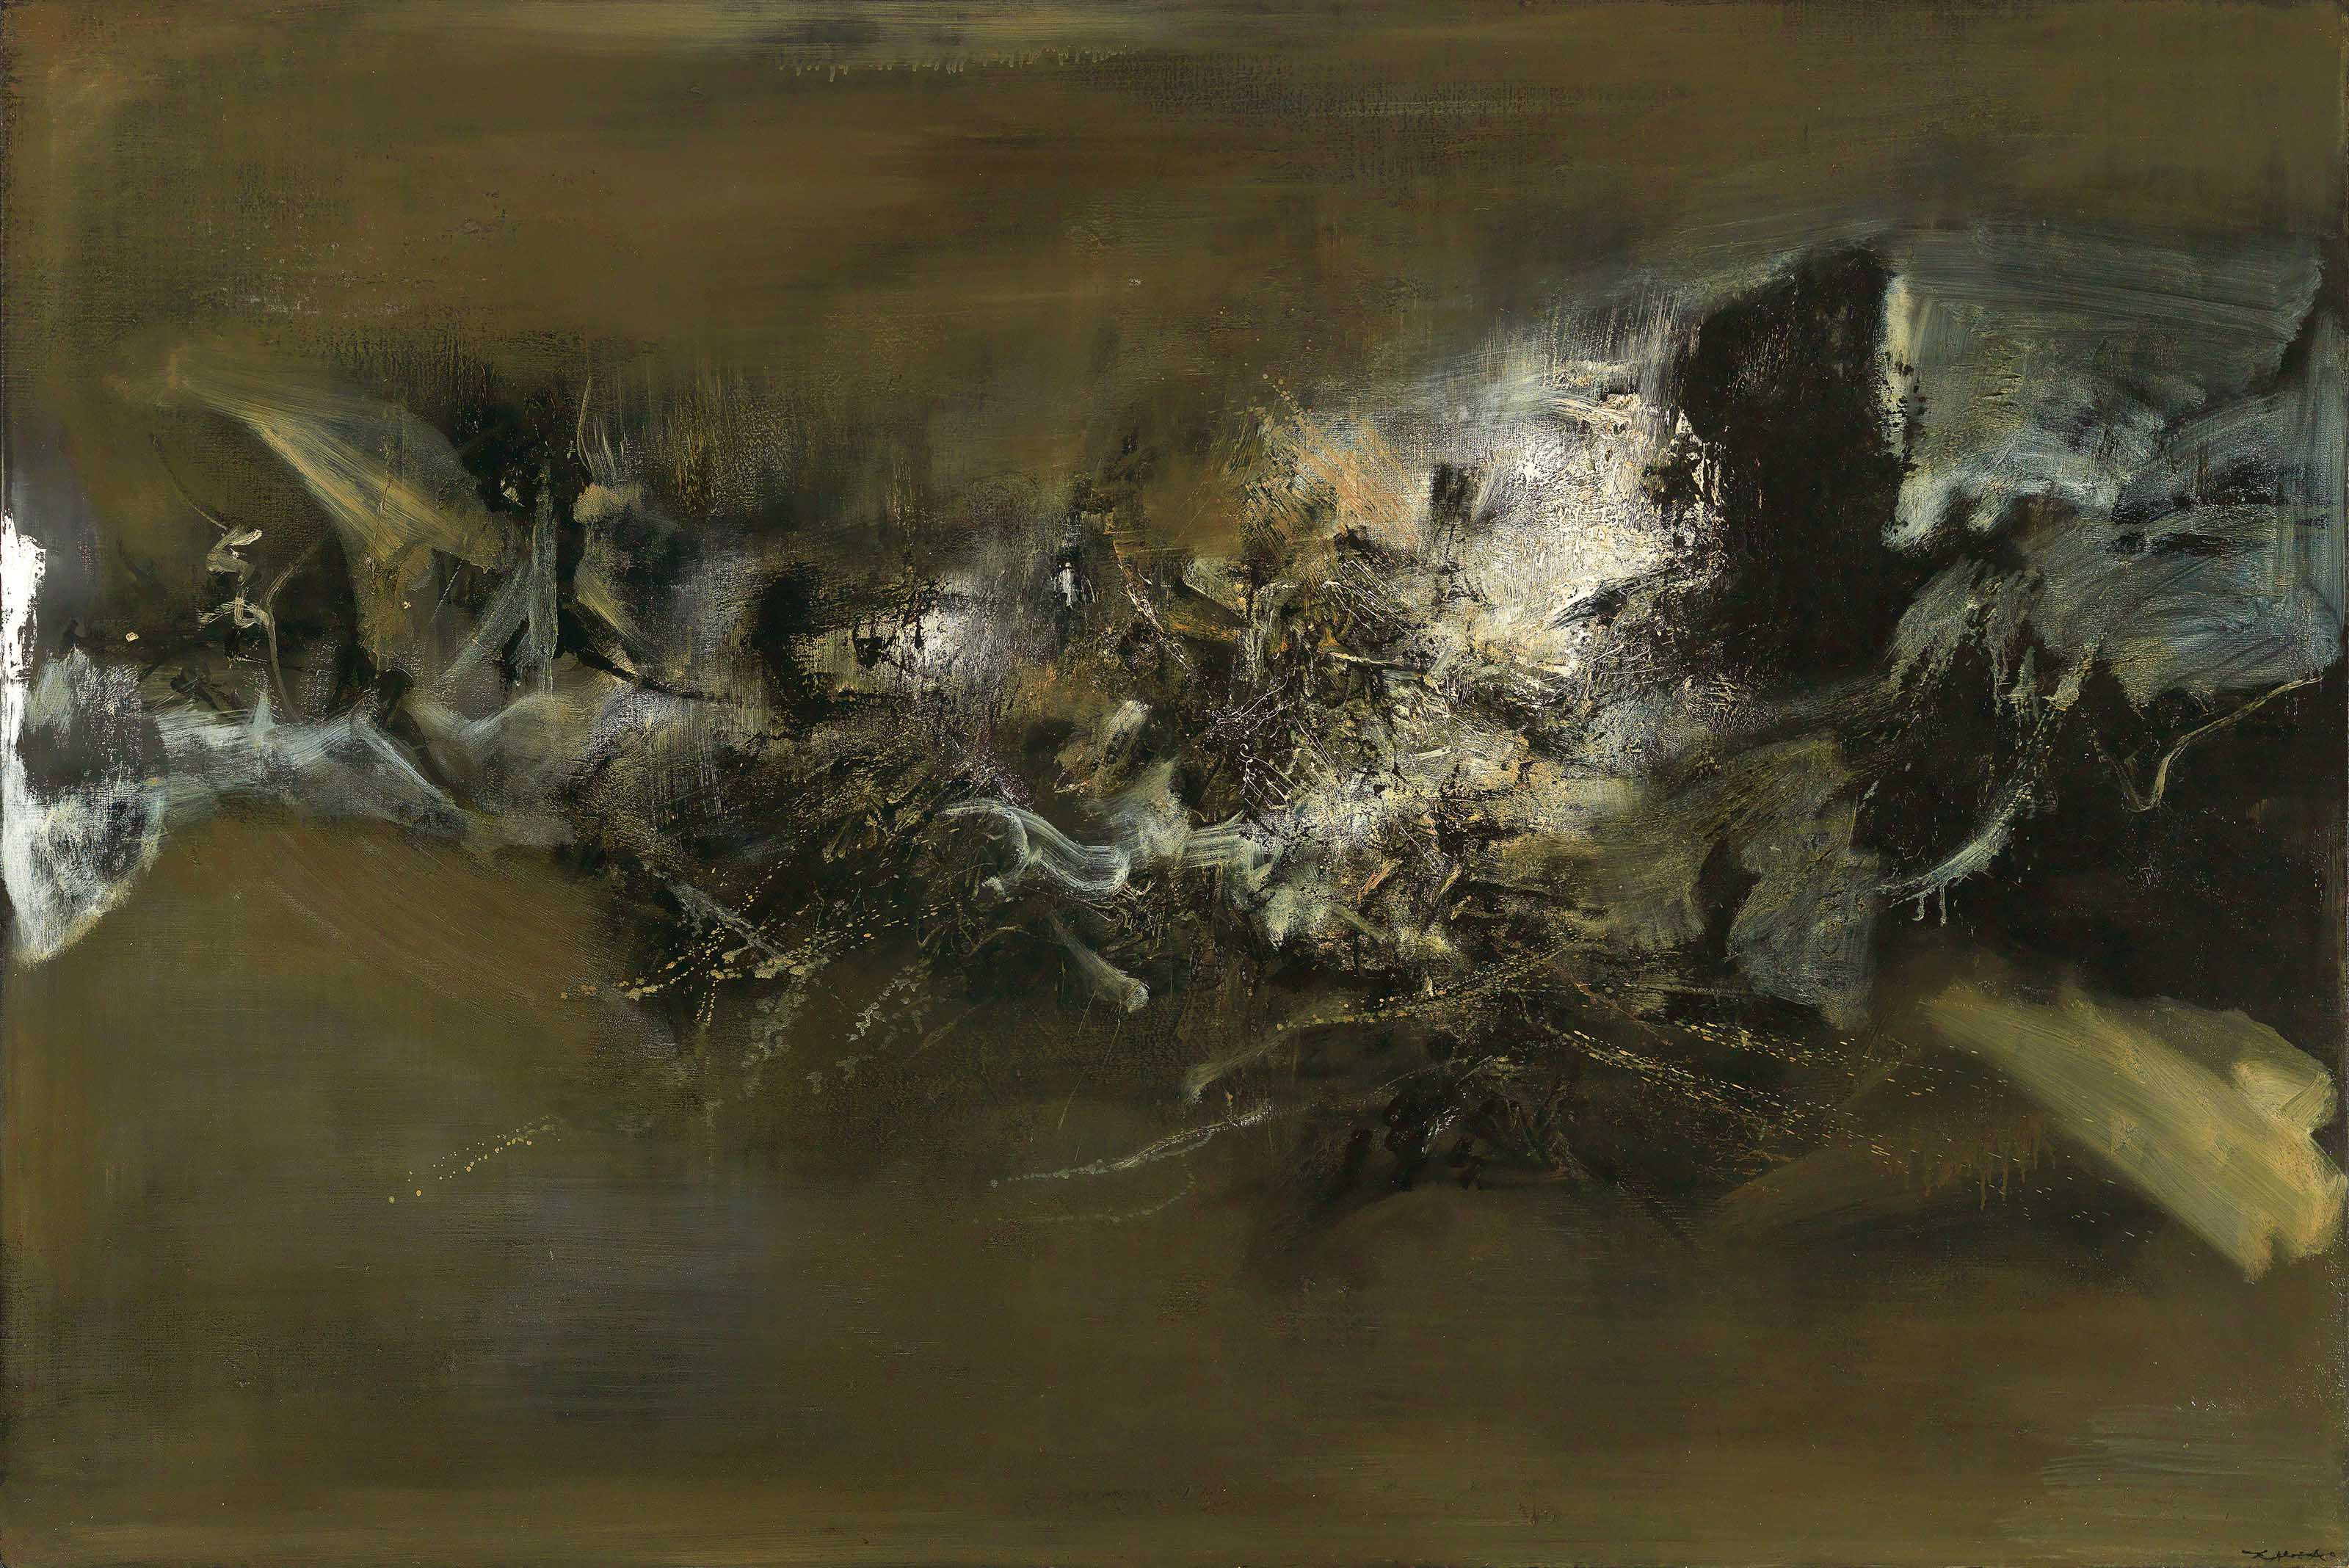 Zao Wou-Ki (1920-2013), 10.11.58-30.12.70, 1958-1970. 130 x 195 cm (51¼ x 76¾ in). Estimate HK$50,000,000-70,000,000. Offered in Asian 20th Century & Contemporary Art on 26 May at Christie's in Hong Kong